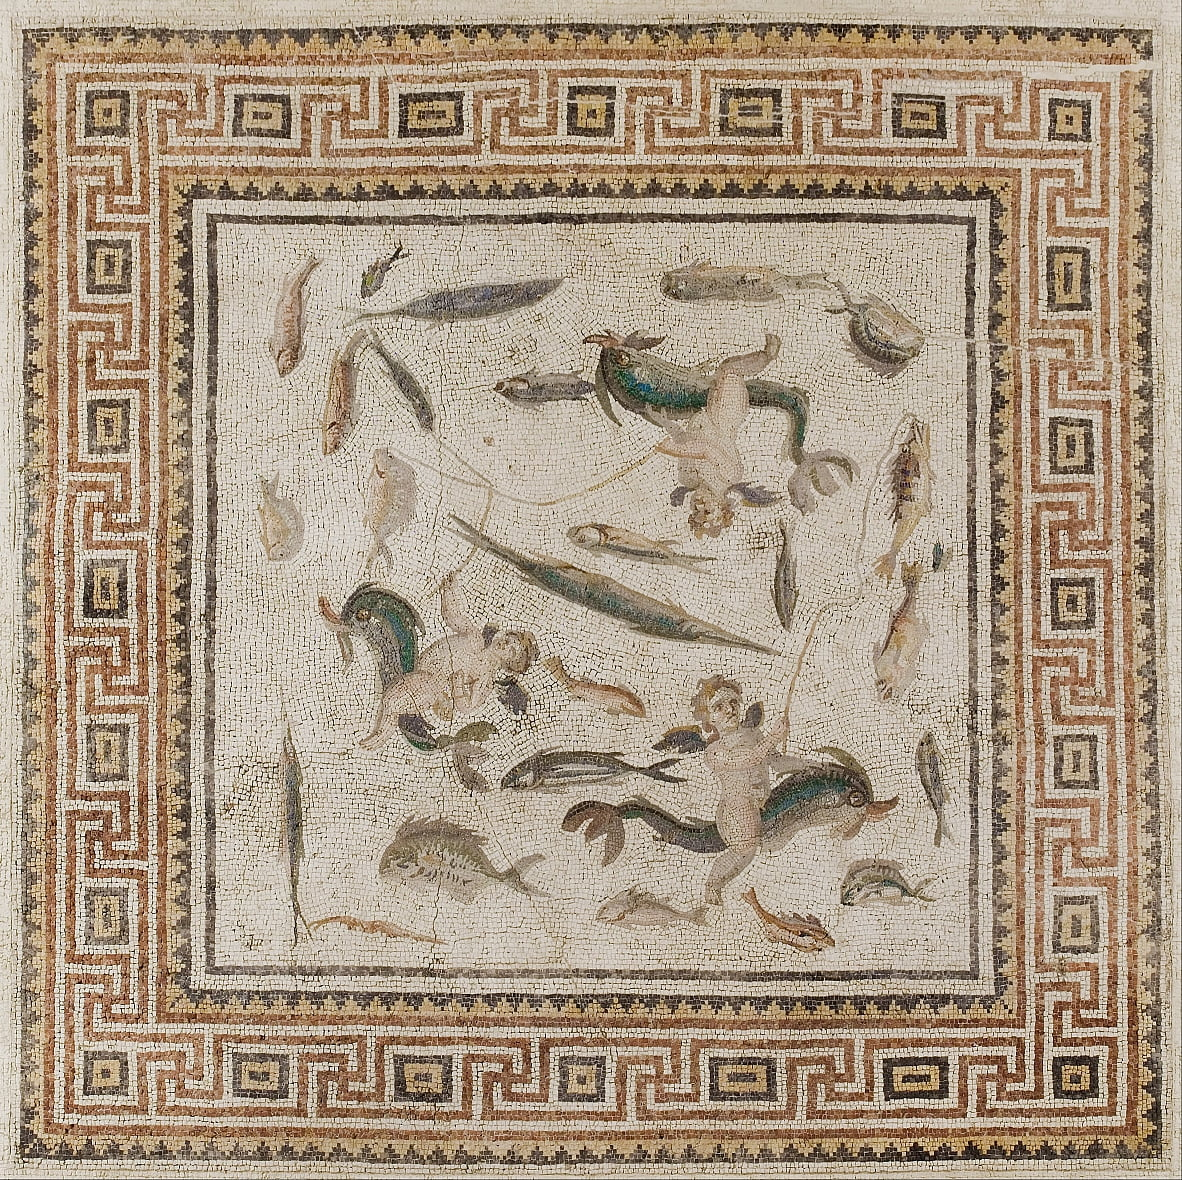 Marine mosaic (central panel of three panels from a floor) by Unbekannt Unbekannt